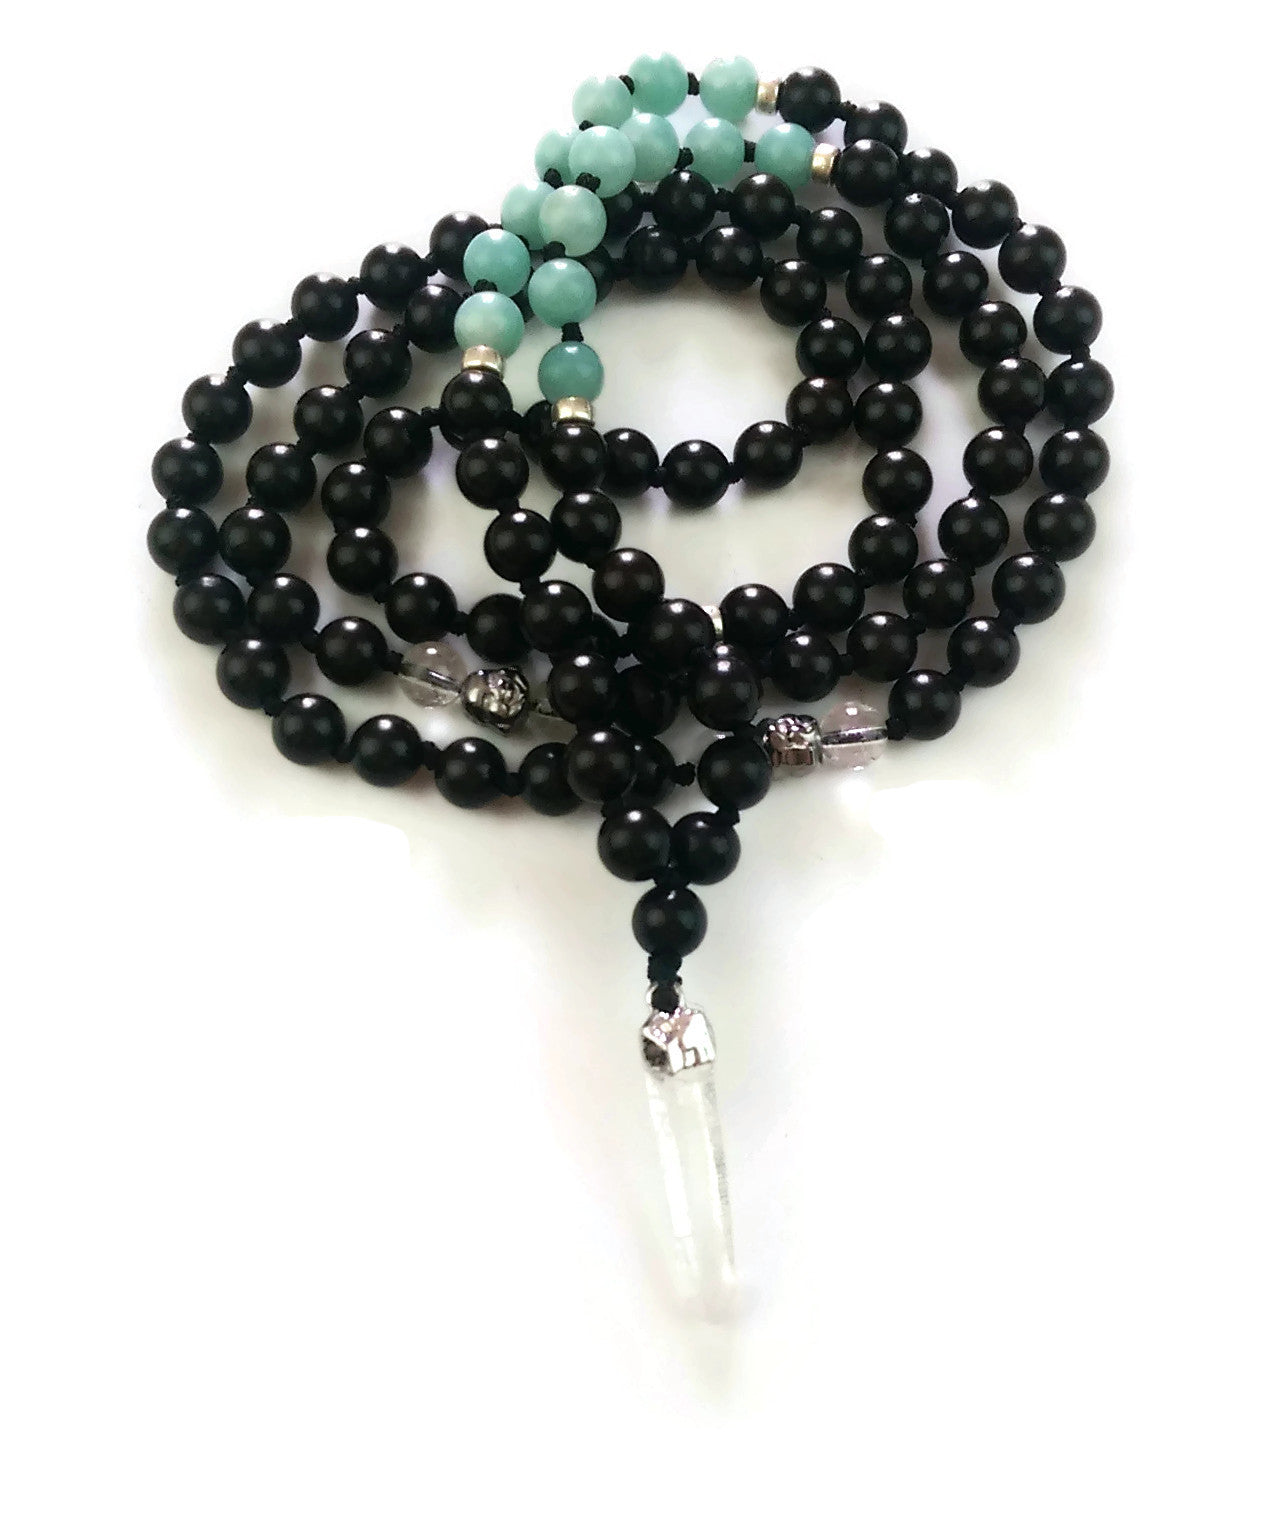 Fresh Start Chakra Collection 8mm Brazilian Amazonite Crystal Ebony wood Traditional Knotted 108 Meditation Mala Necklace Heart Chakra